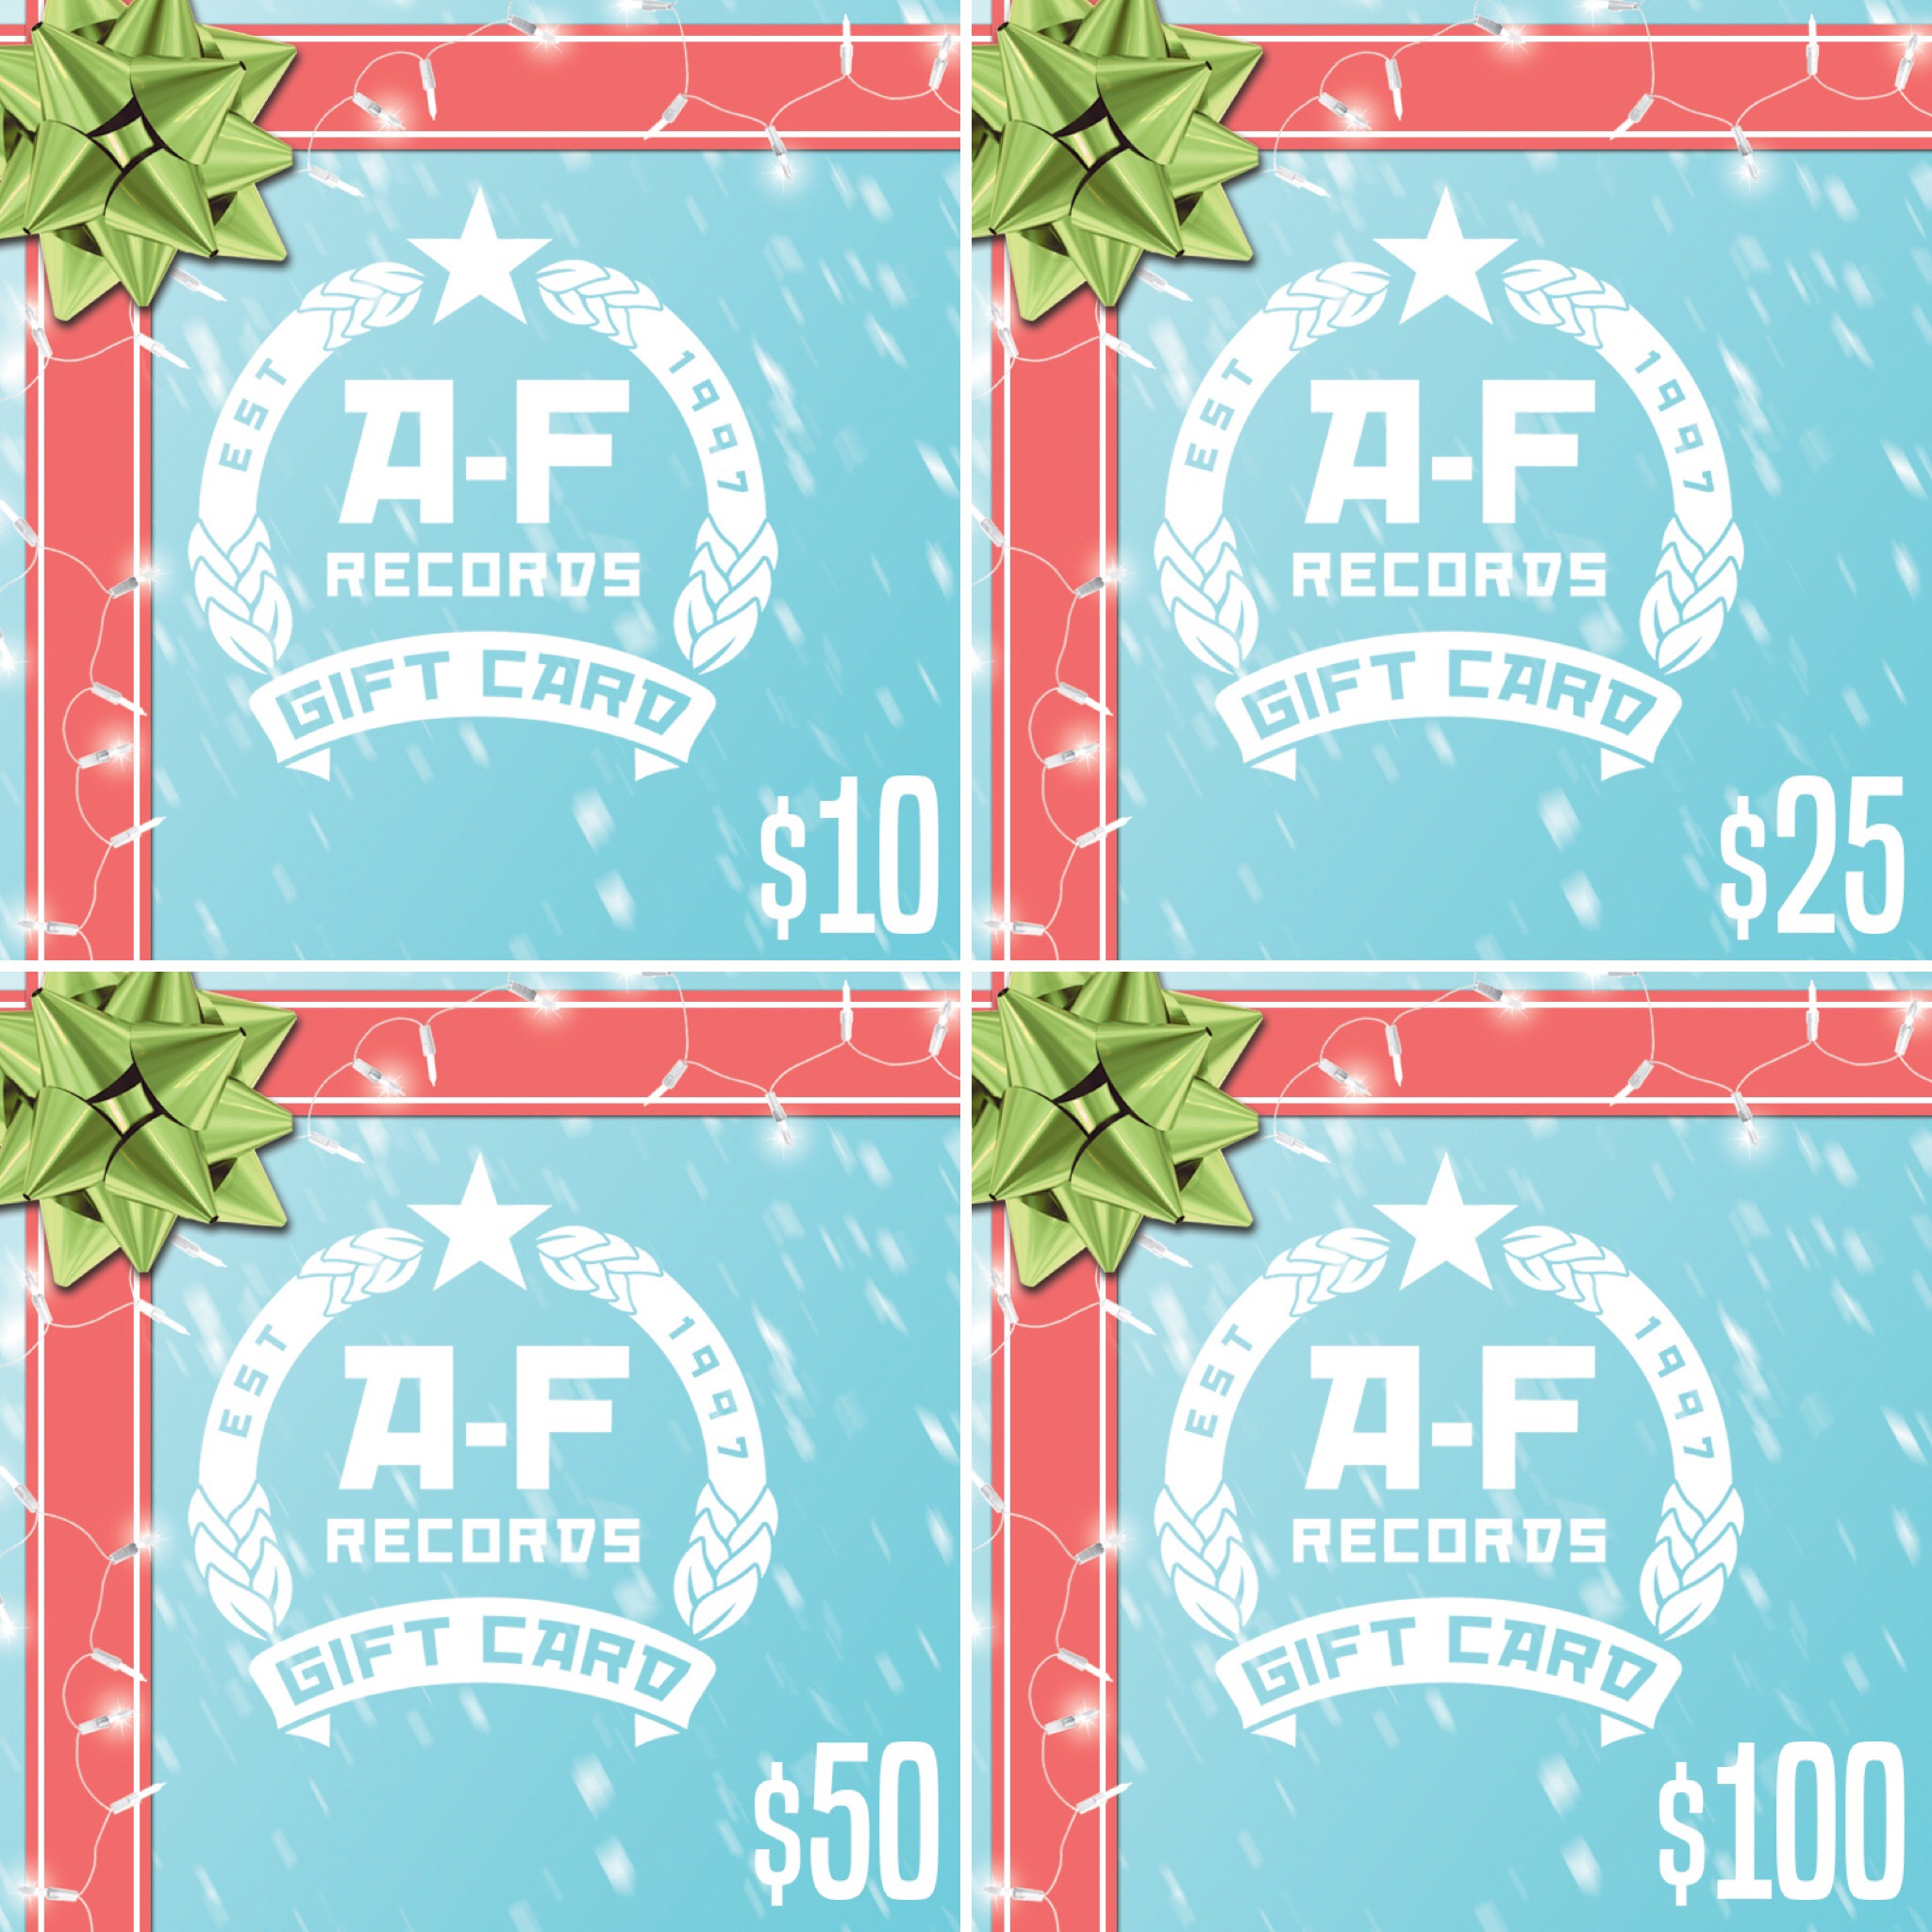 Purchase an A-F Records Digital Gift Card!